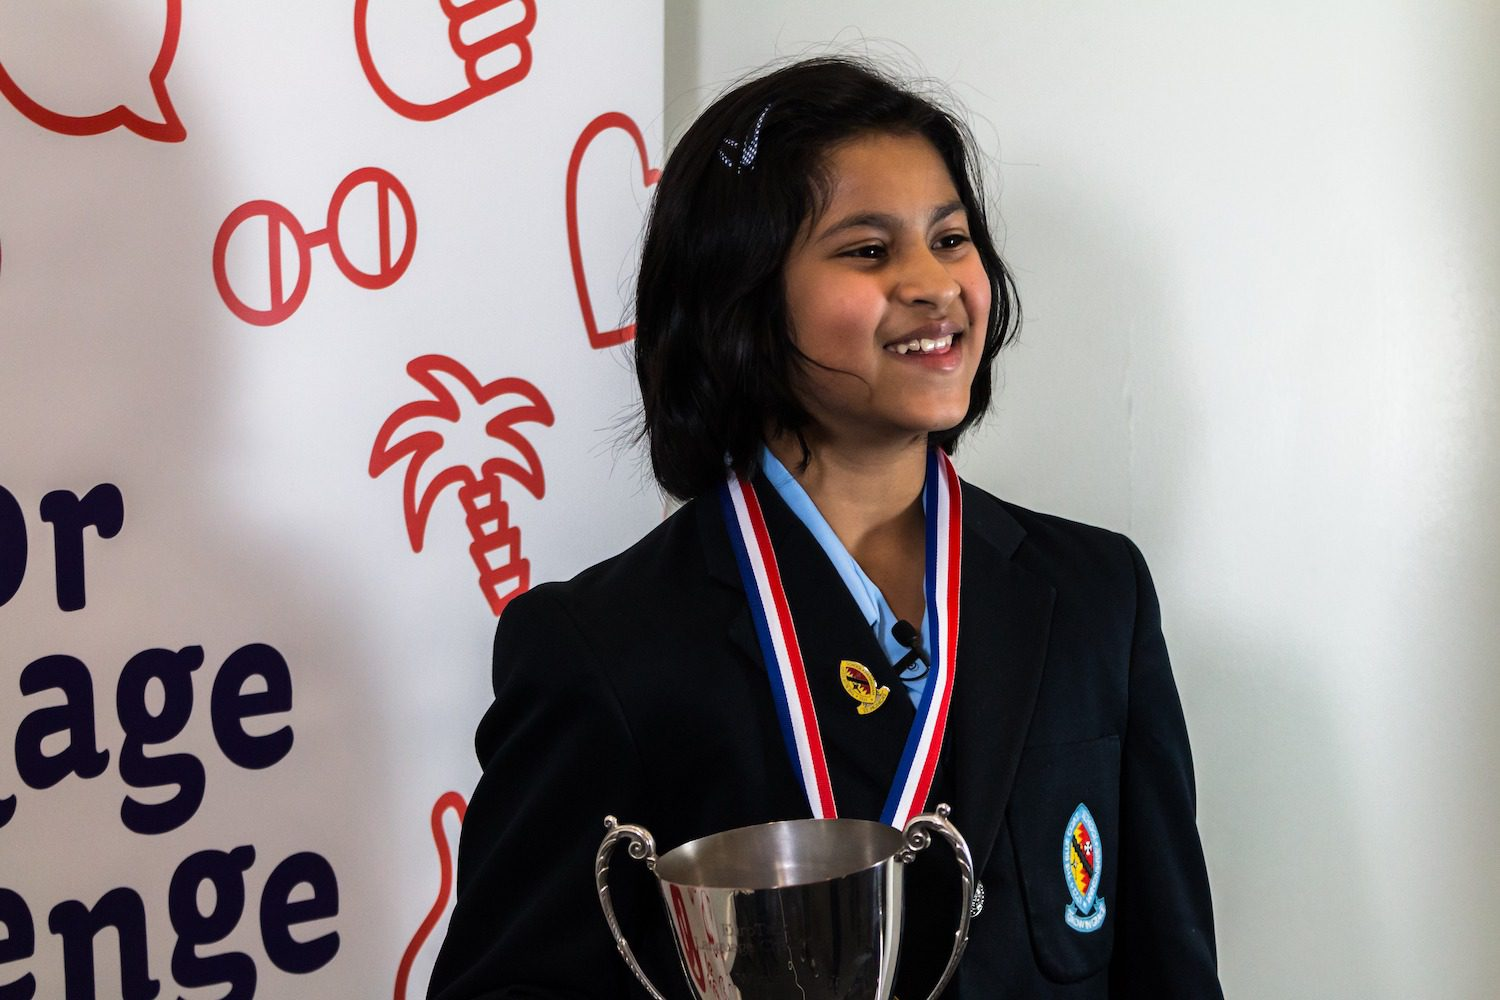 Ritisha Baidyaray, JLC champion 2016